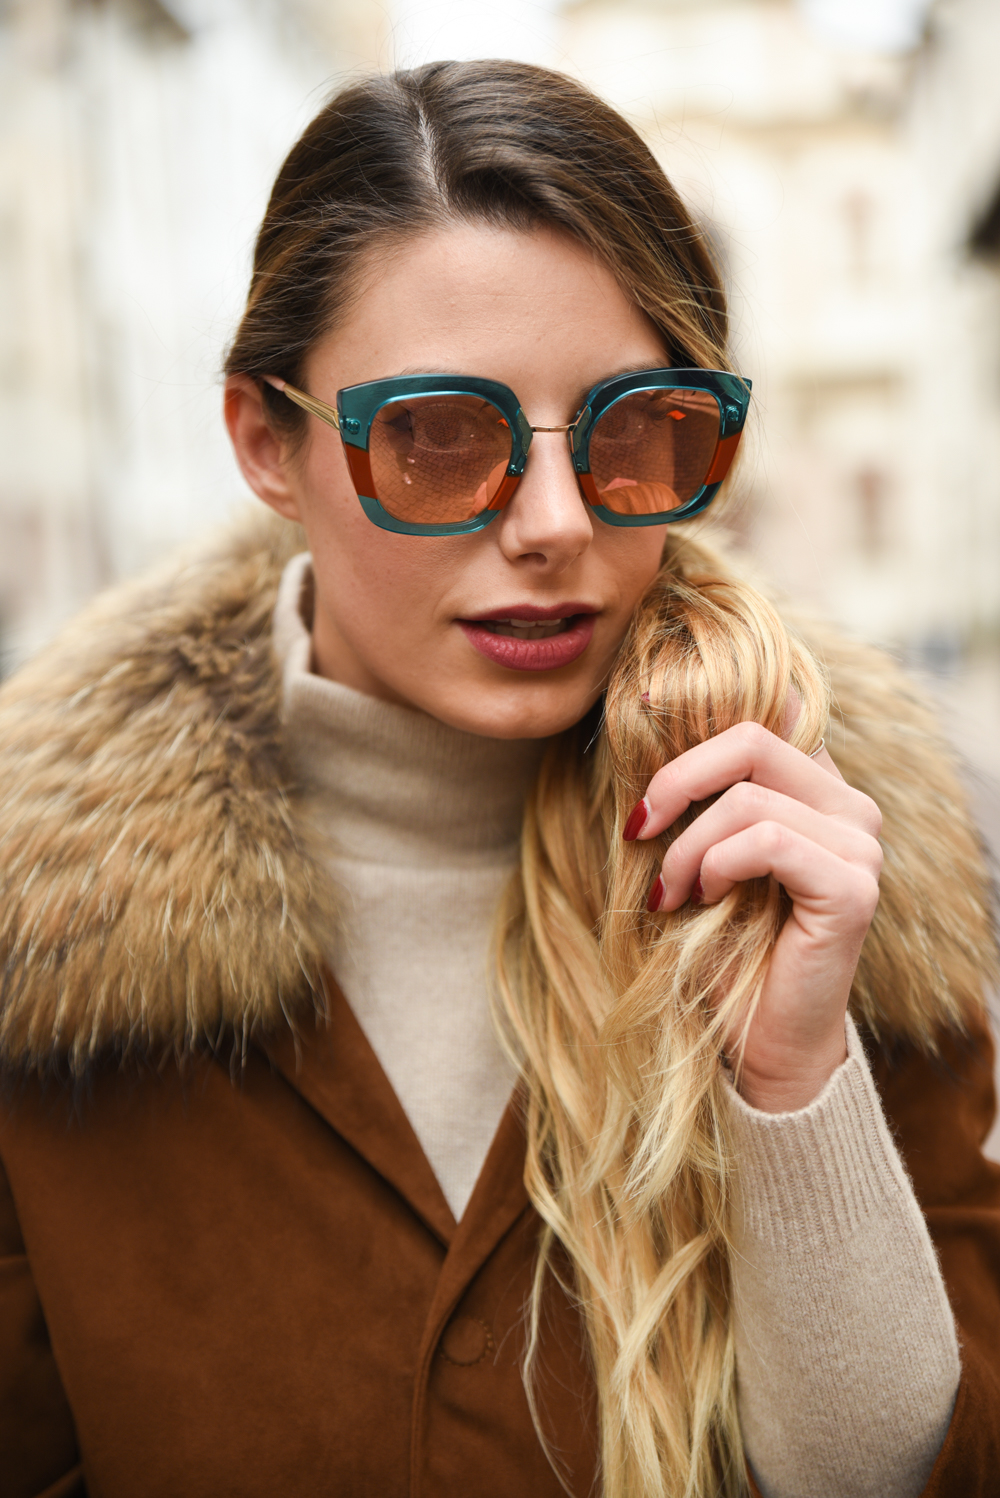 giulia de martin behind my glasses eyewear influencer blogger content creator blog sunglasses eyeglasses face è face paris sunglasses fall winter 2018 frame woman -17